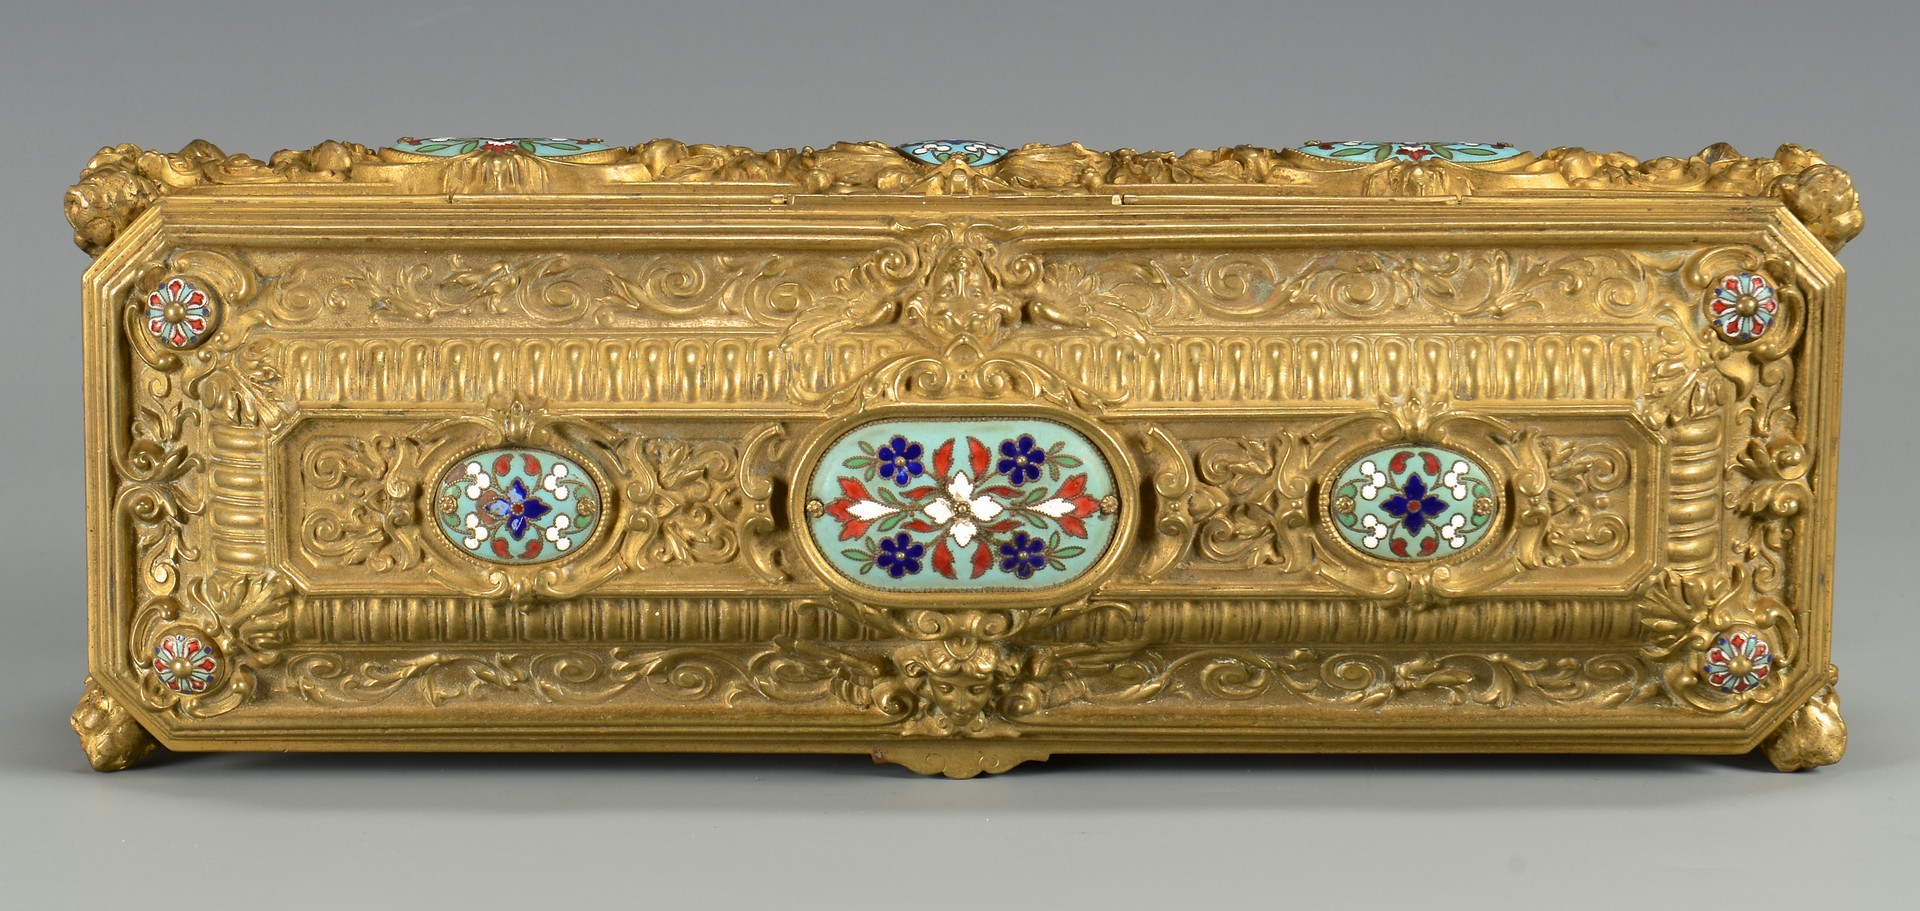 Lot 37: Rectangular Bronze Casket w/ Enamel